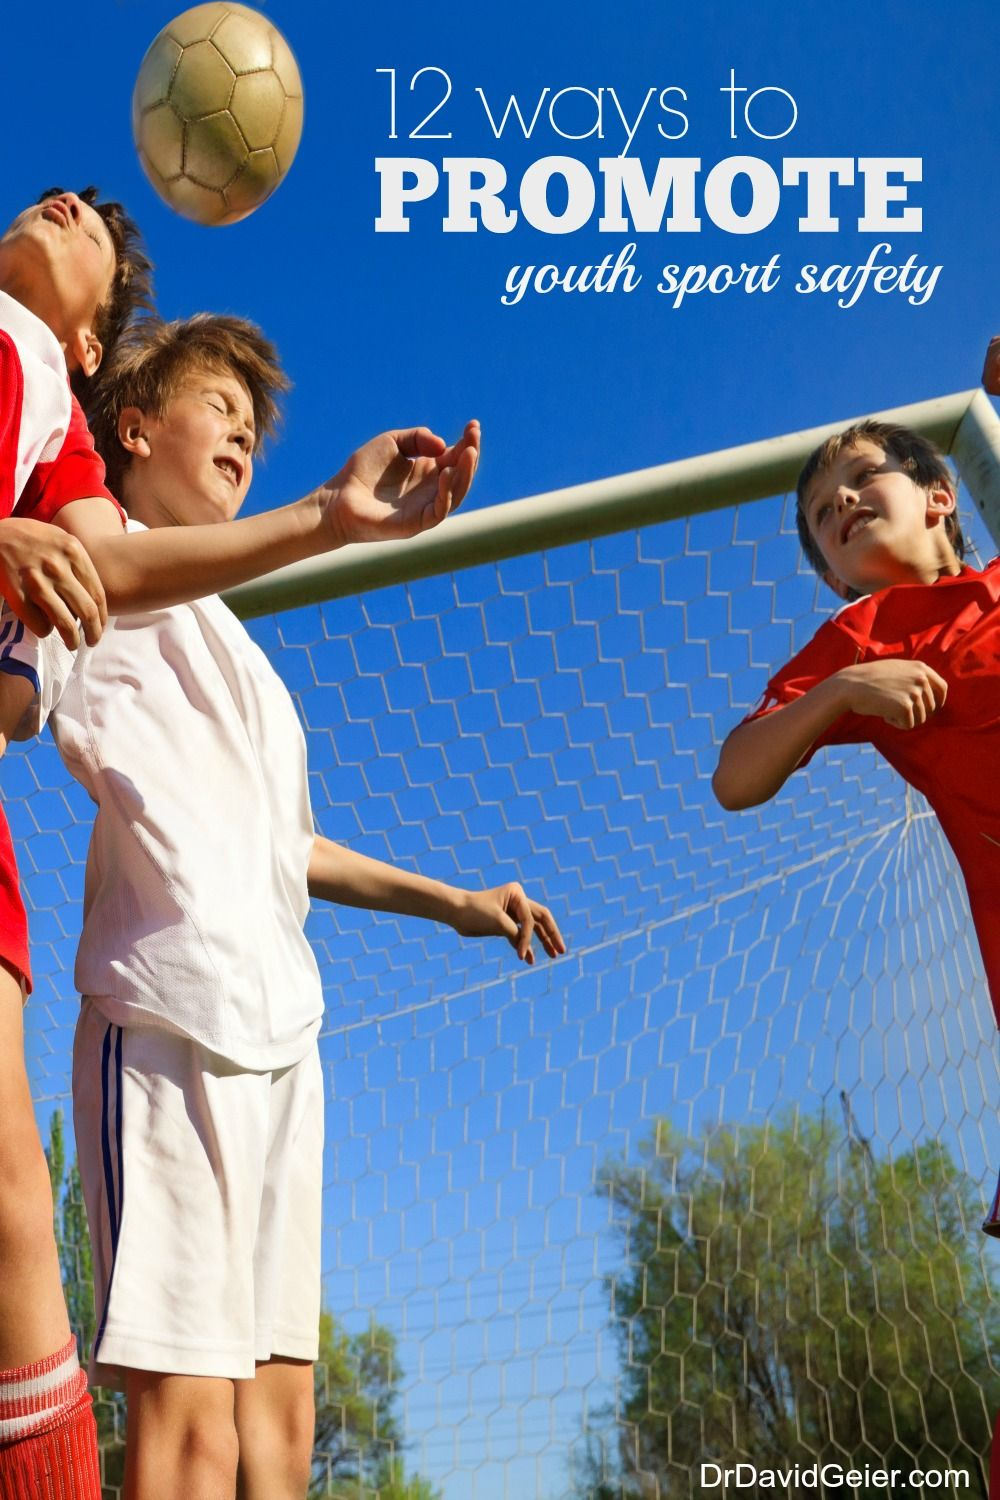 12 ways we all can help promote youth sports safety from